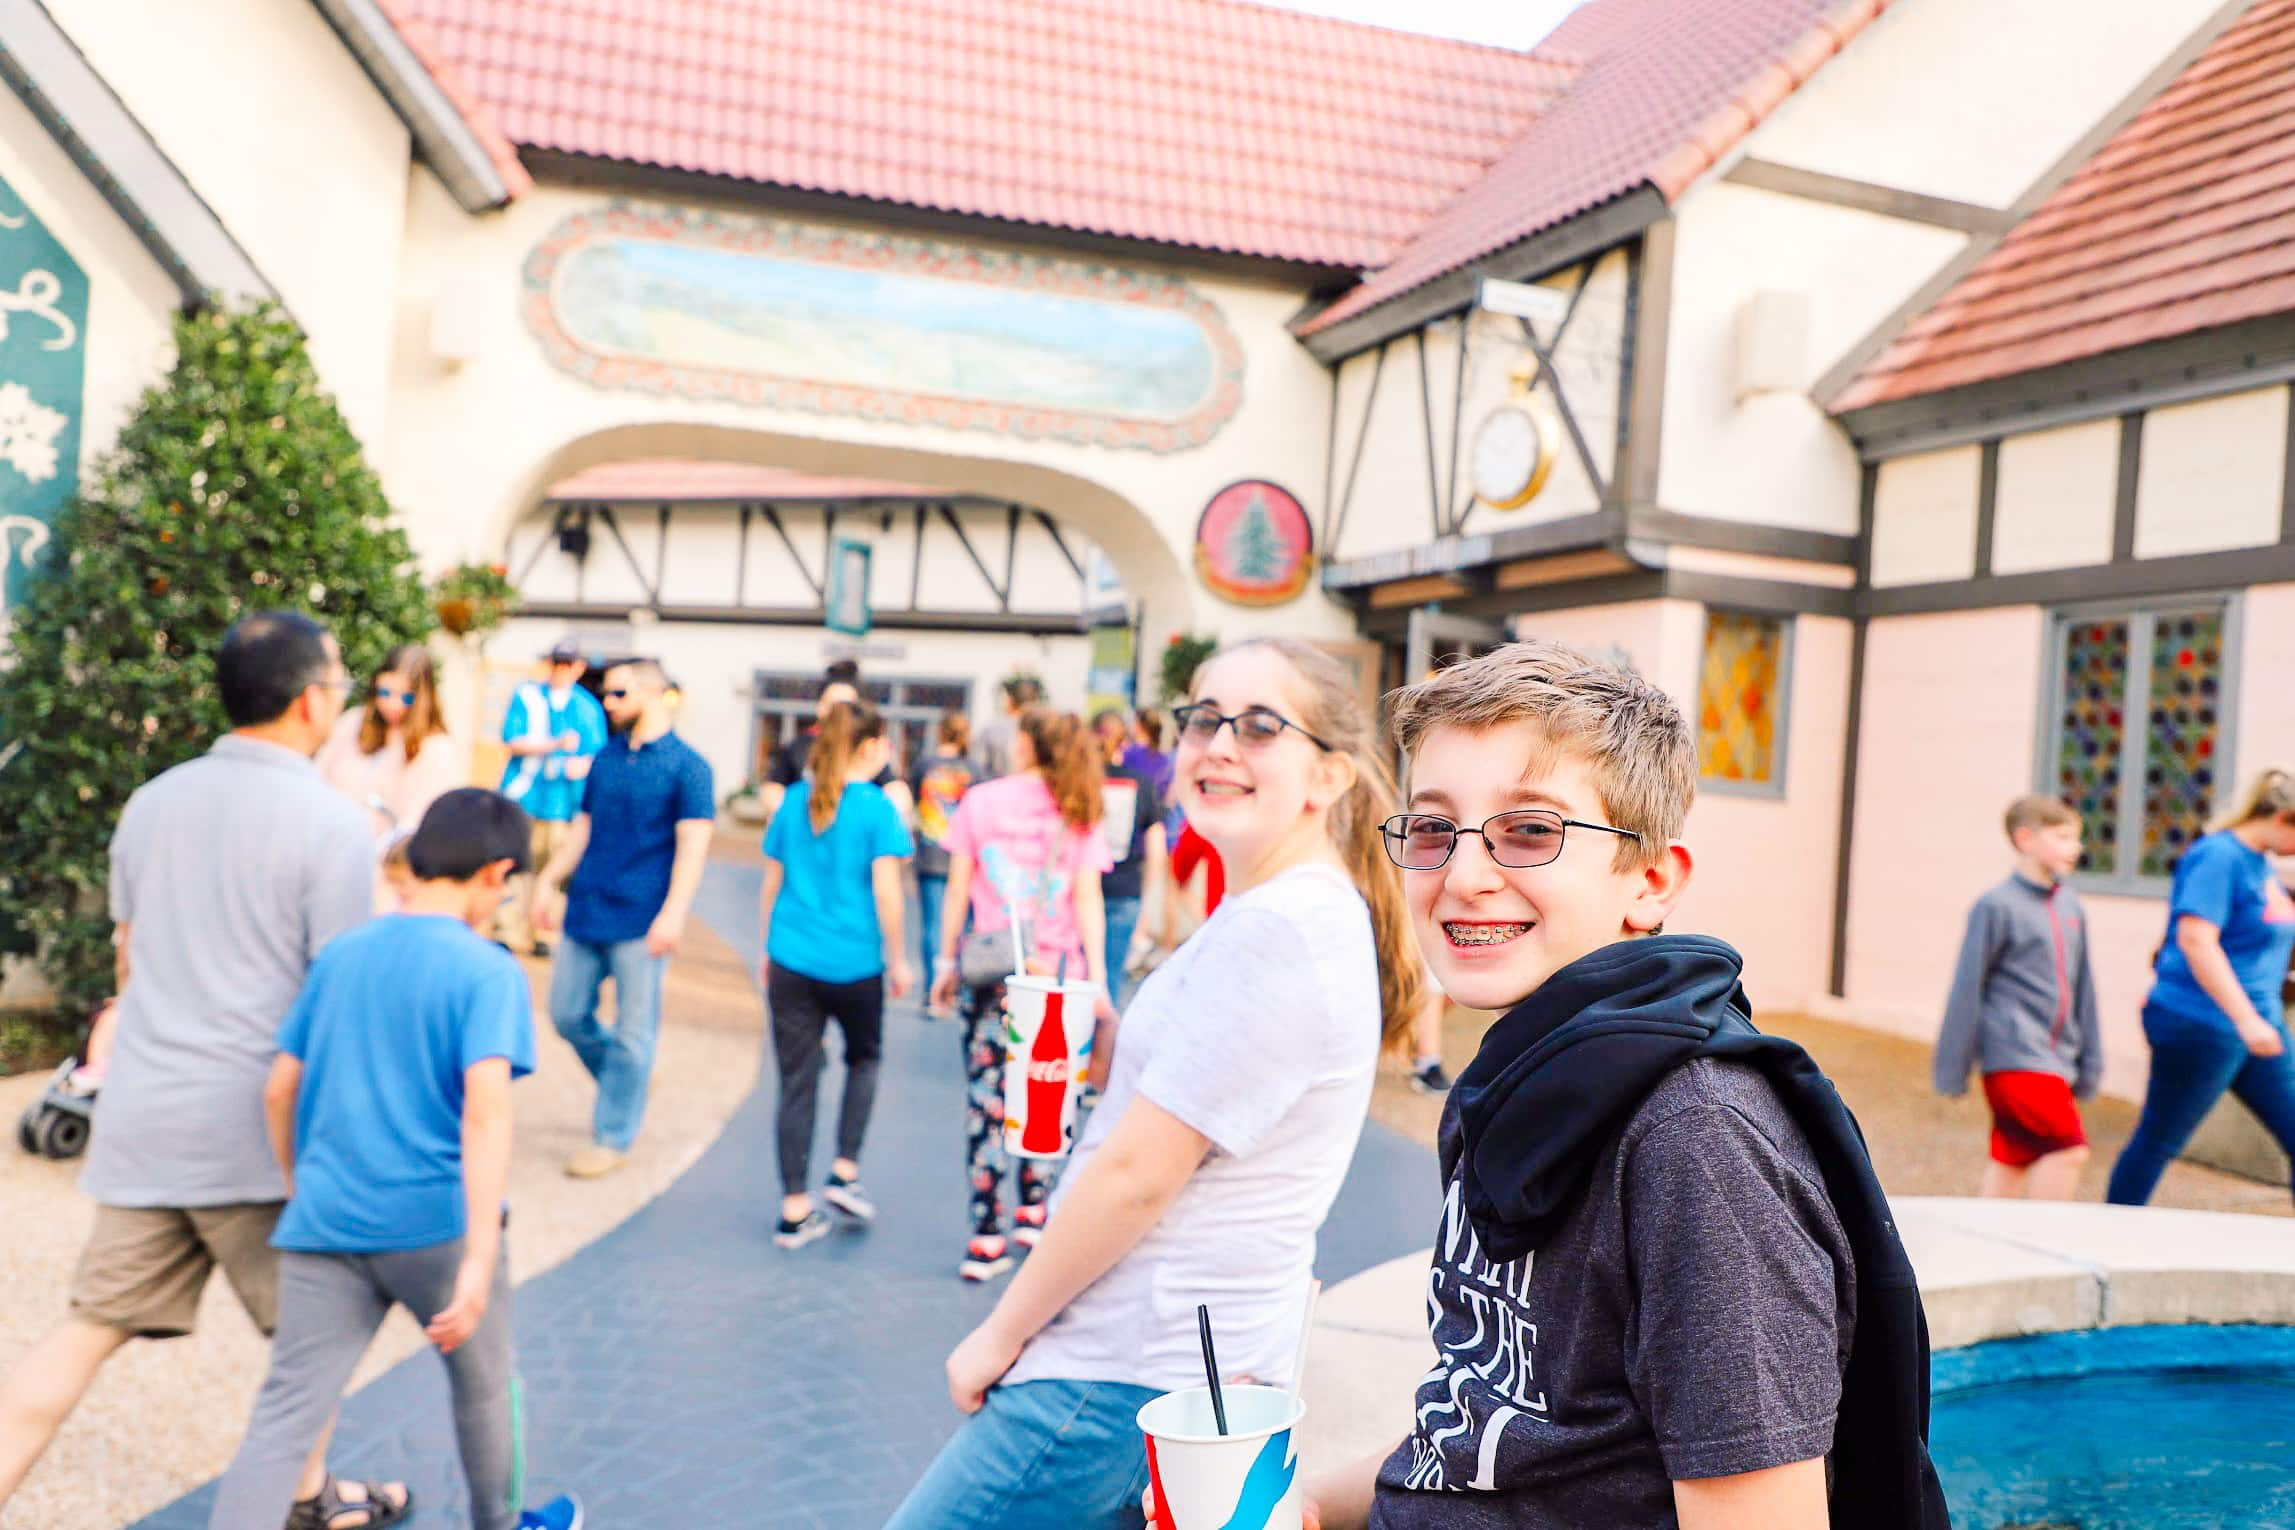 Greater williamsburg vacation ideas full travel guide - Can you bring food into busch gardens ...